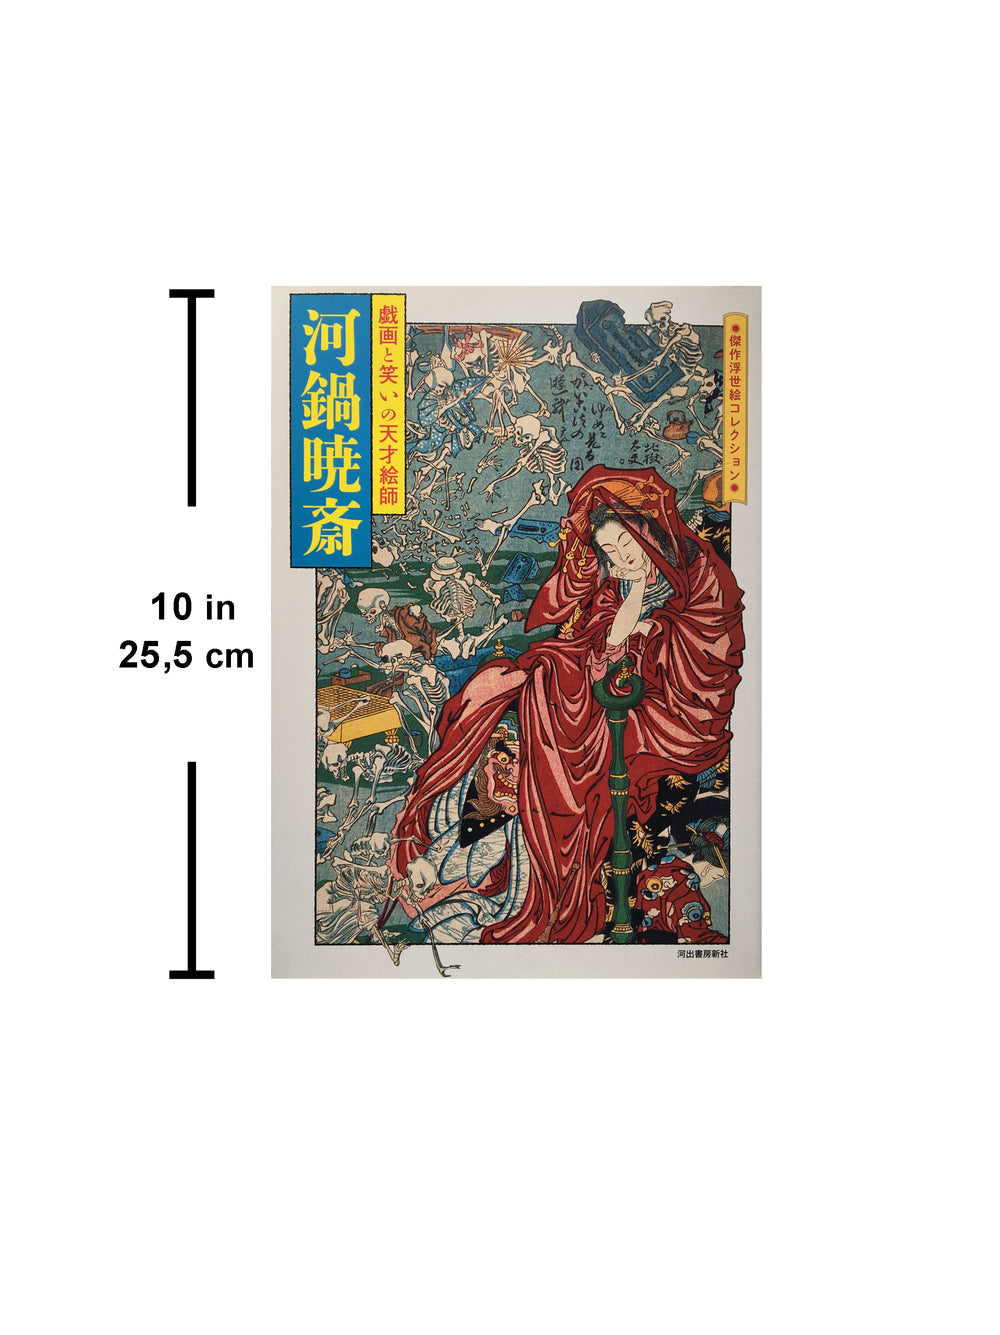 Kawanabe Kyosai and his best Collection of Ukiyoe.